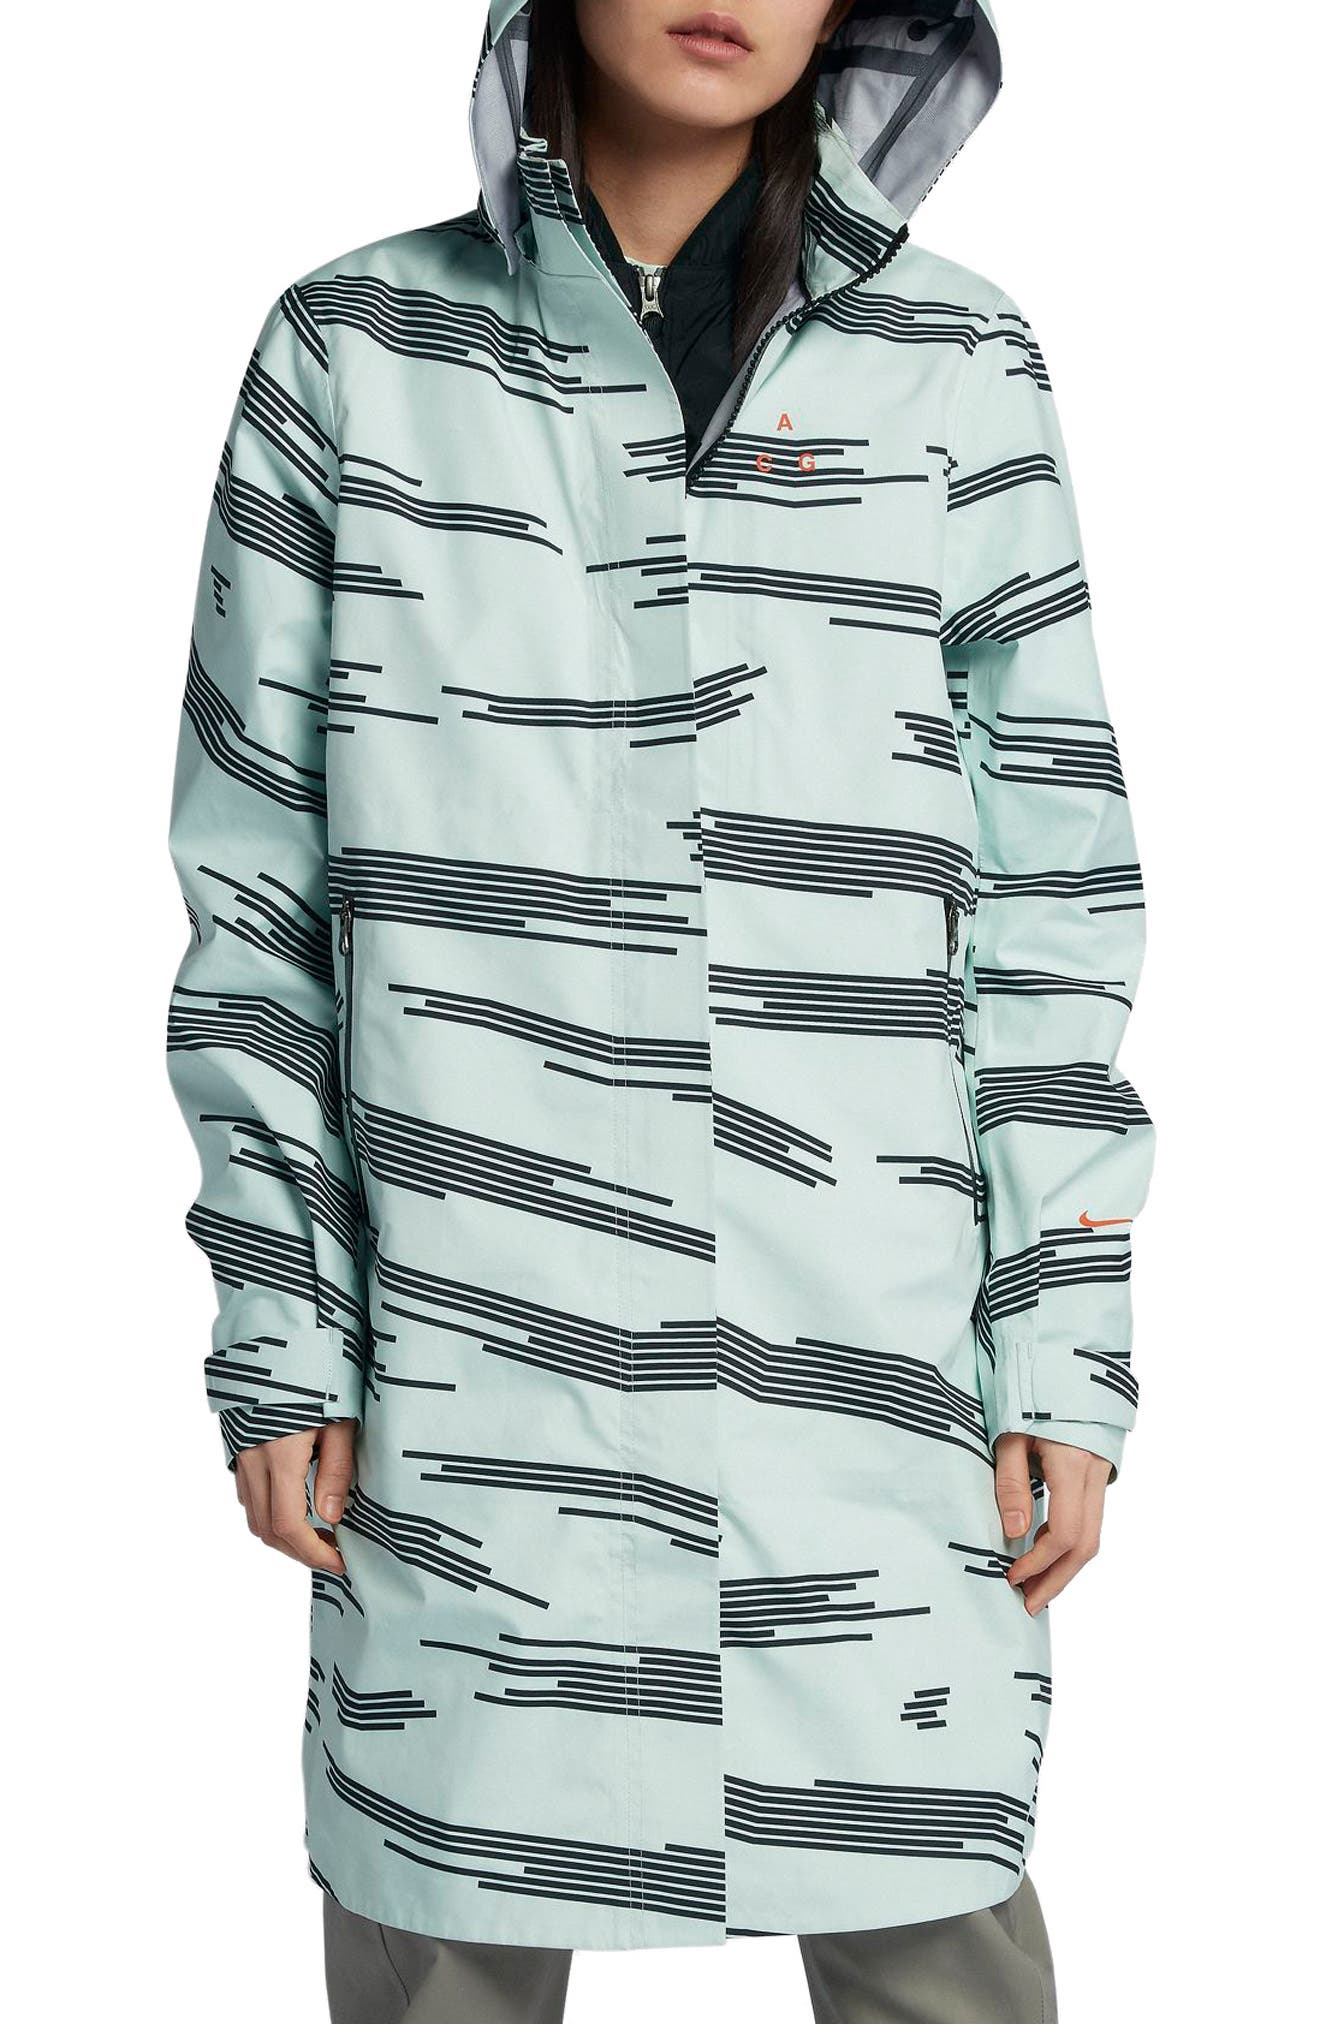 NikeLab ACG 3-in-1 System Women's Coat,                             Main thumbnail 1, color,                             Barely Green/ Black